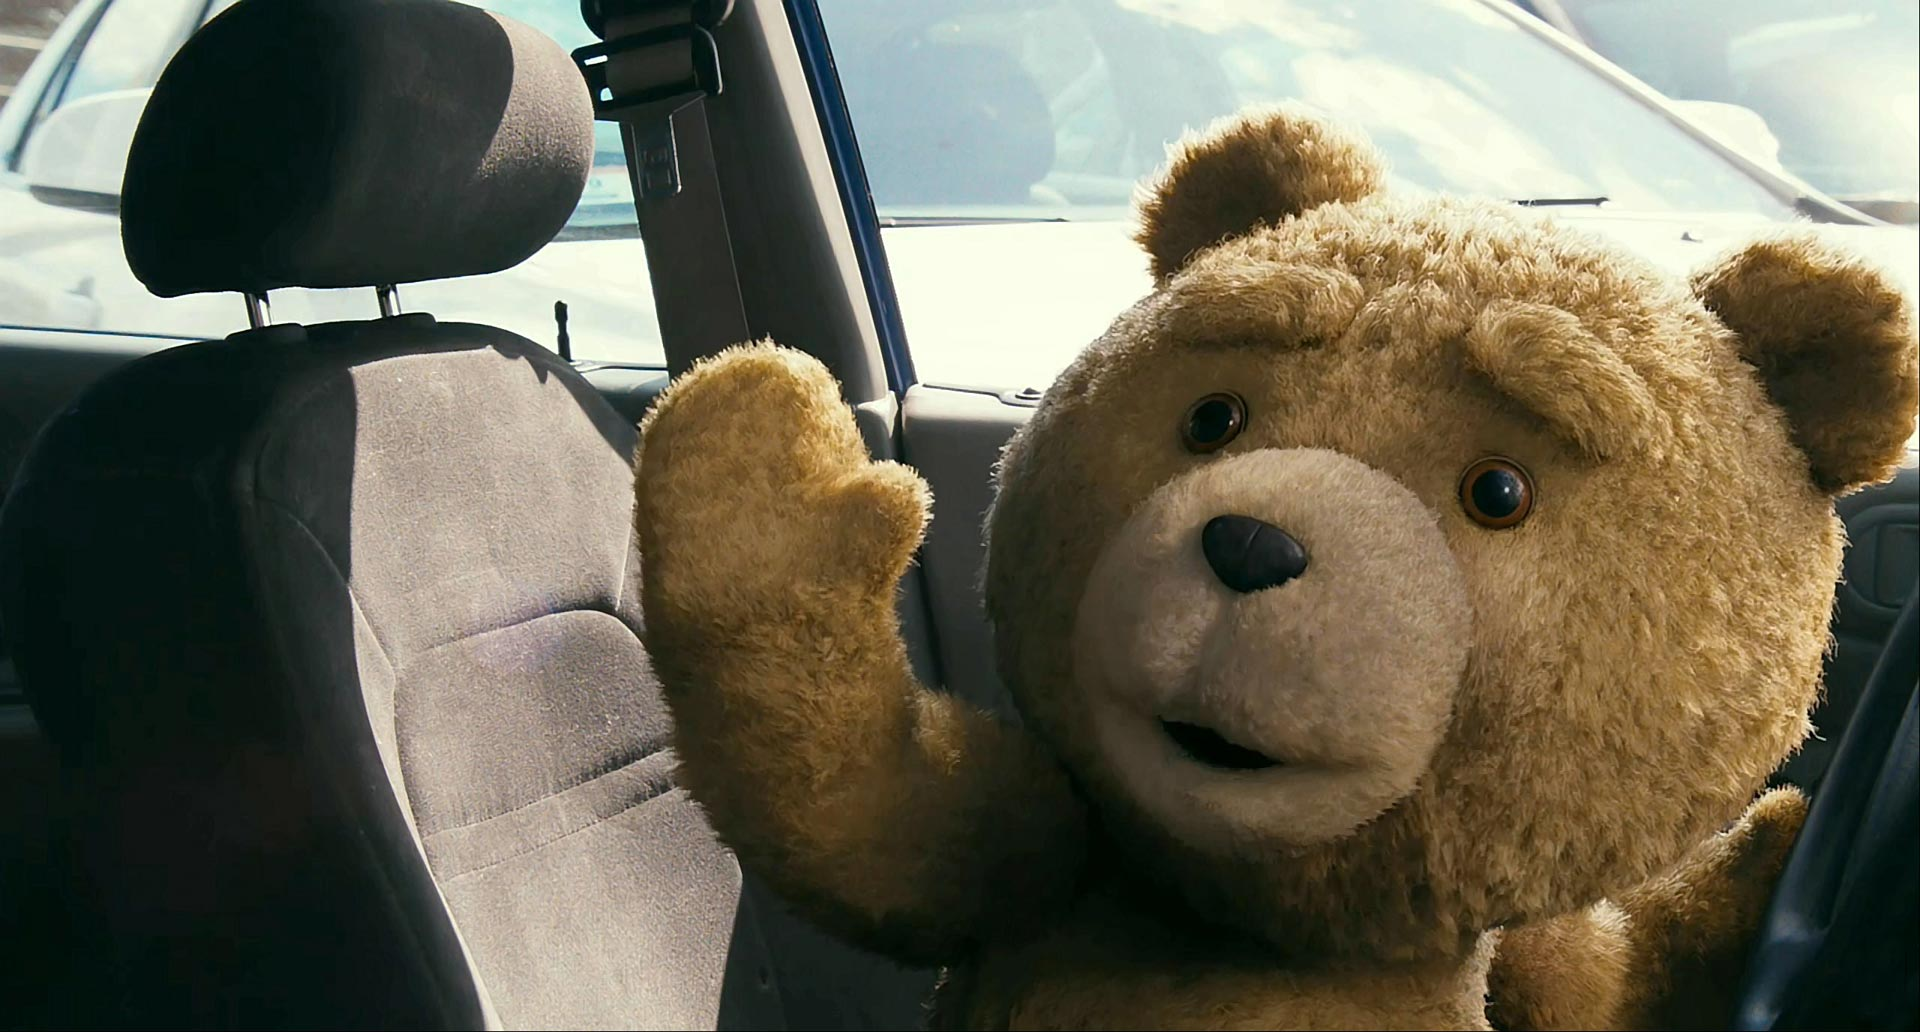 image - ted the bear | ted movie wiki | fandom poweredwikia